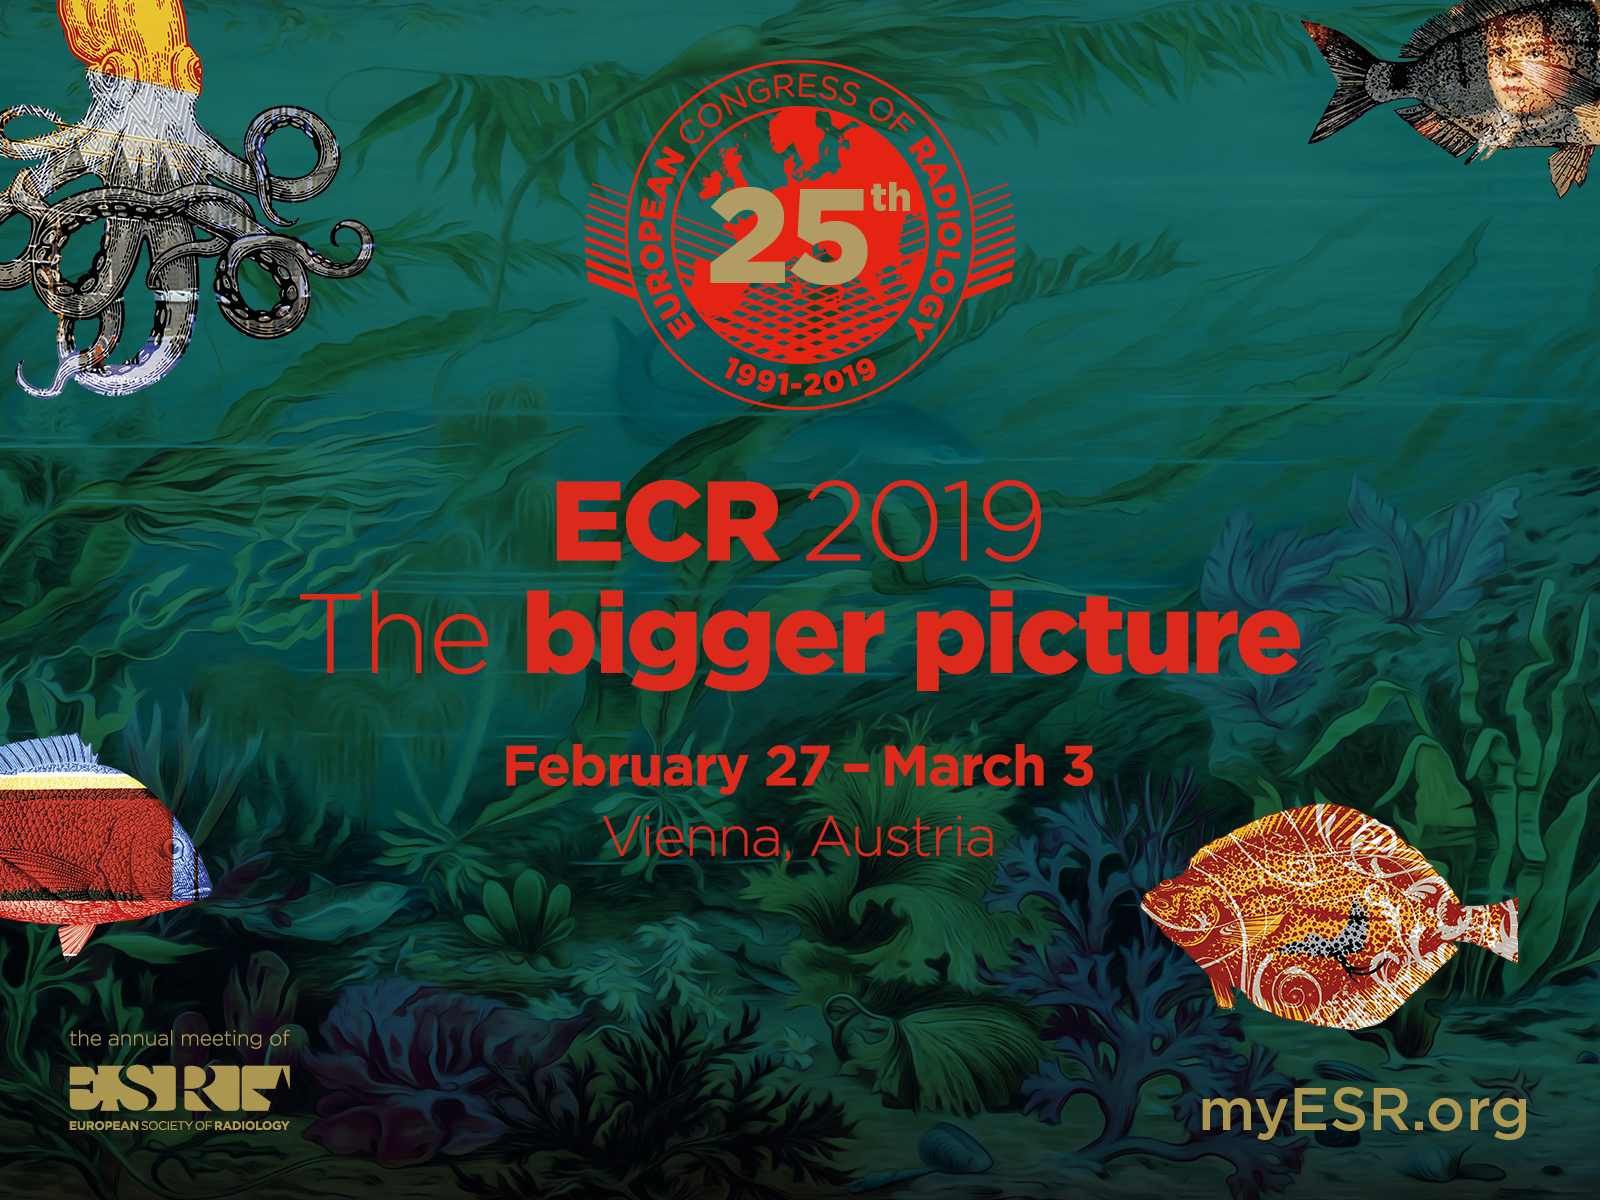 Physicists' Activities during ECR2019 in Vienna